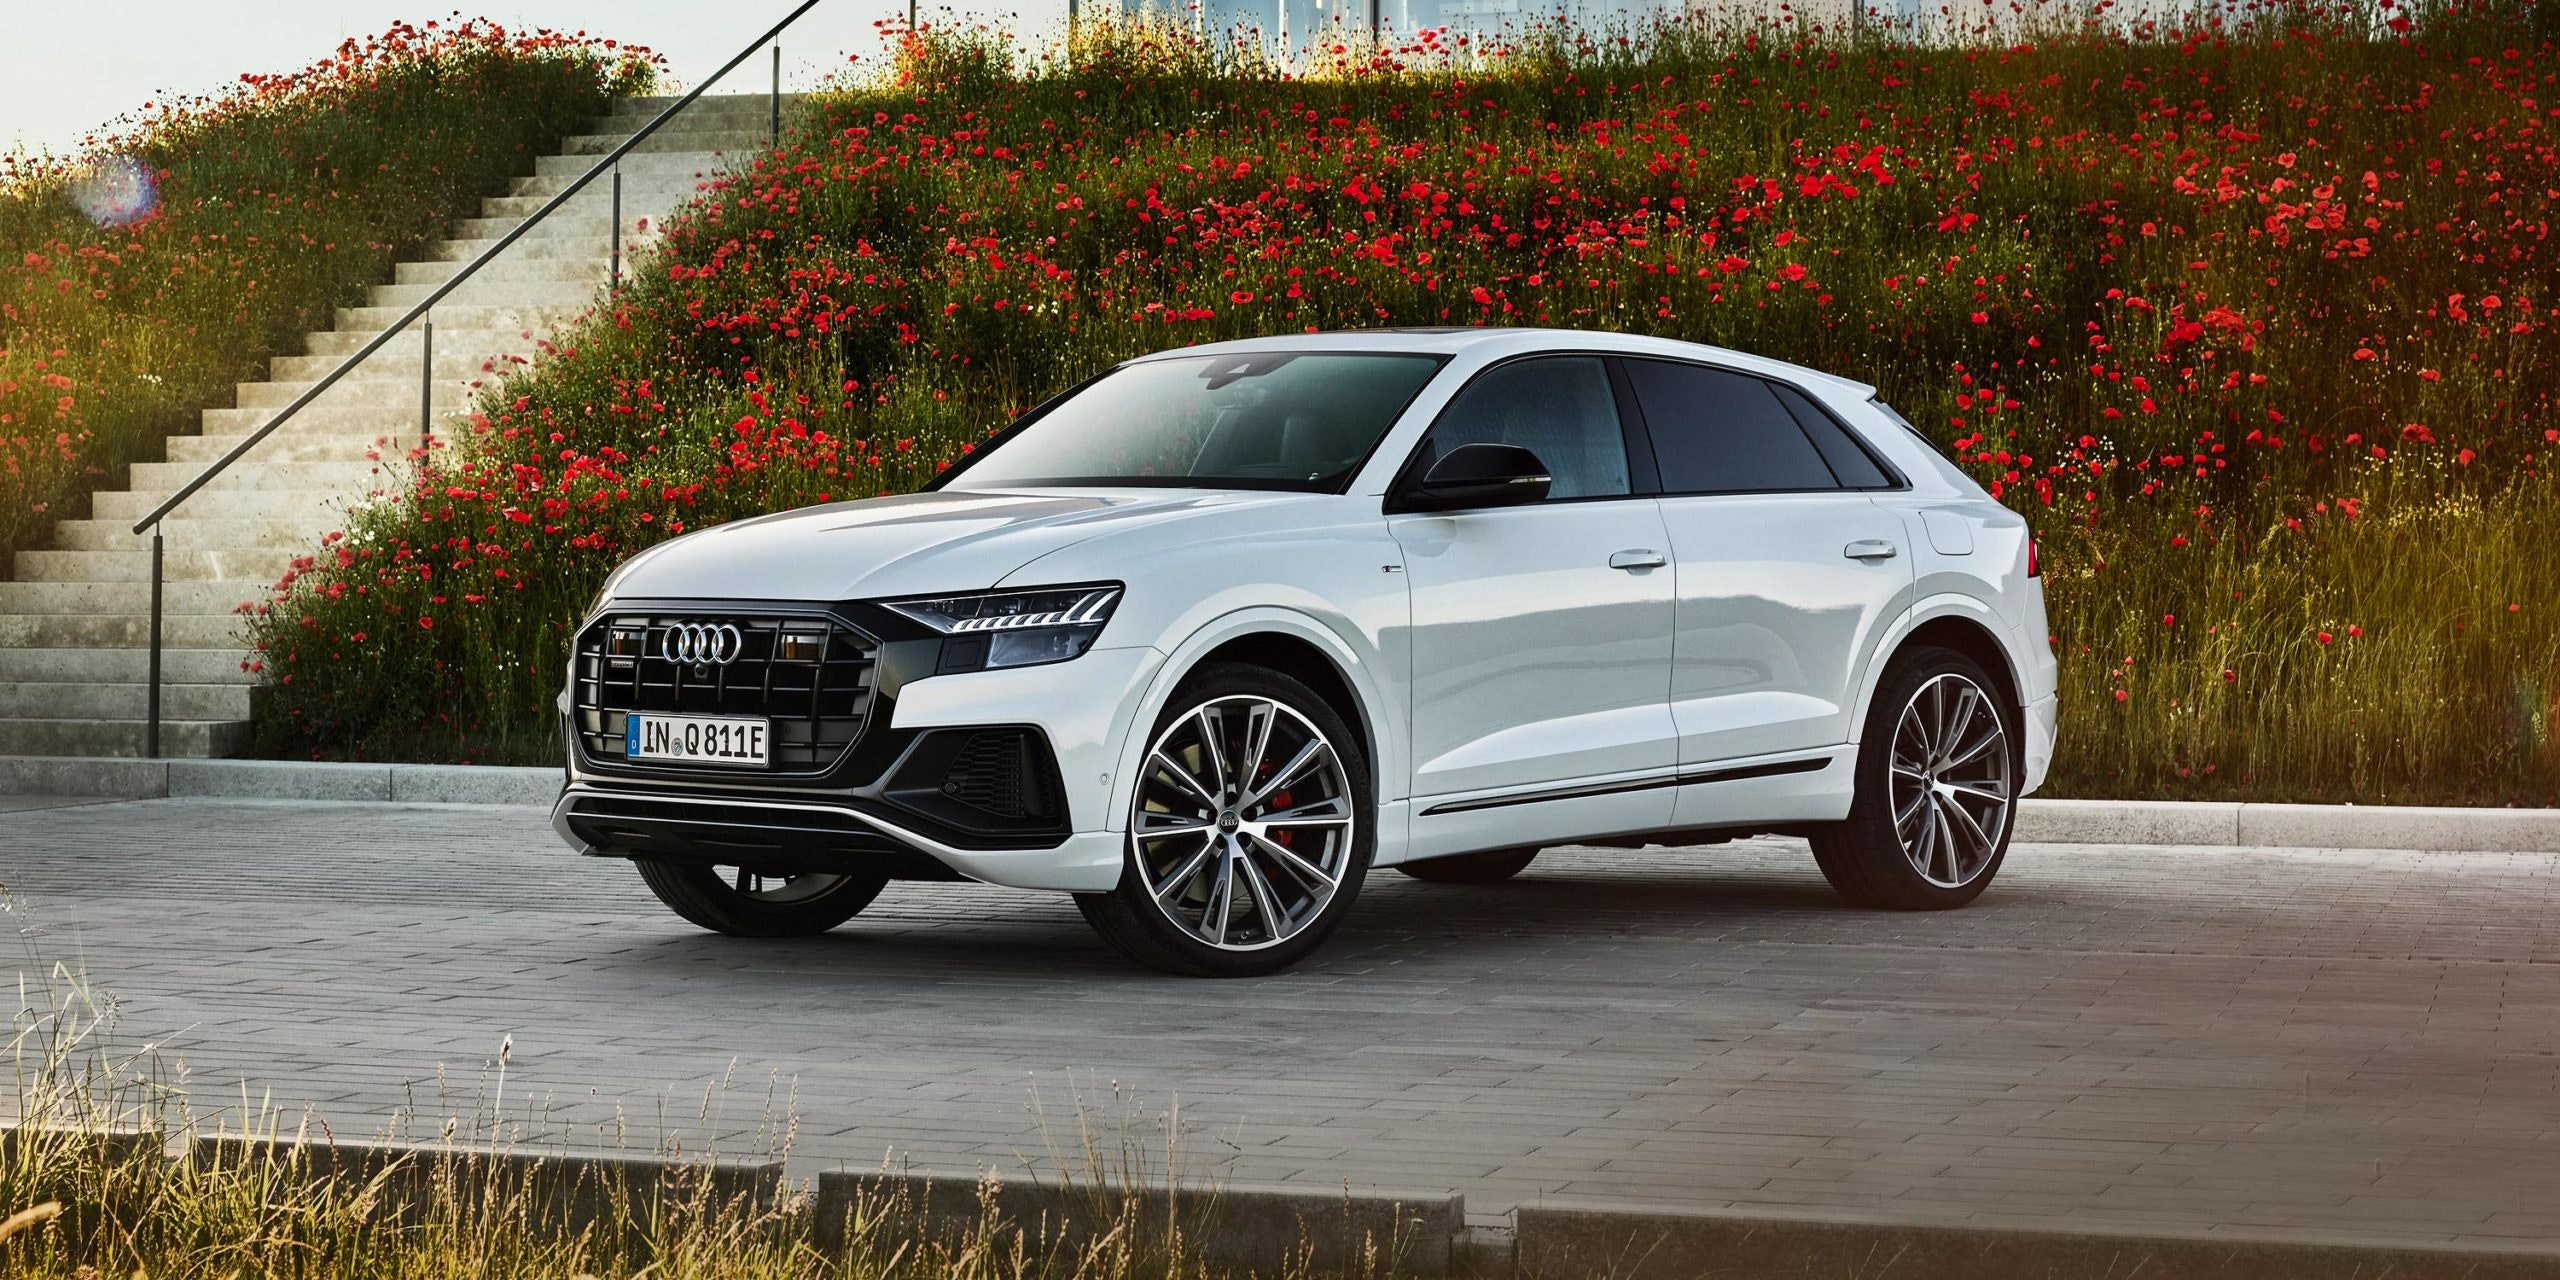 New 2021 Audi Q8 Hybrid Revealed Price And Release Date Carwow